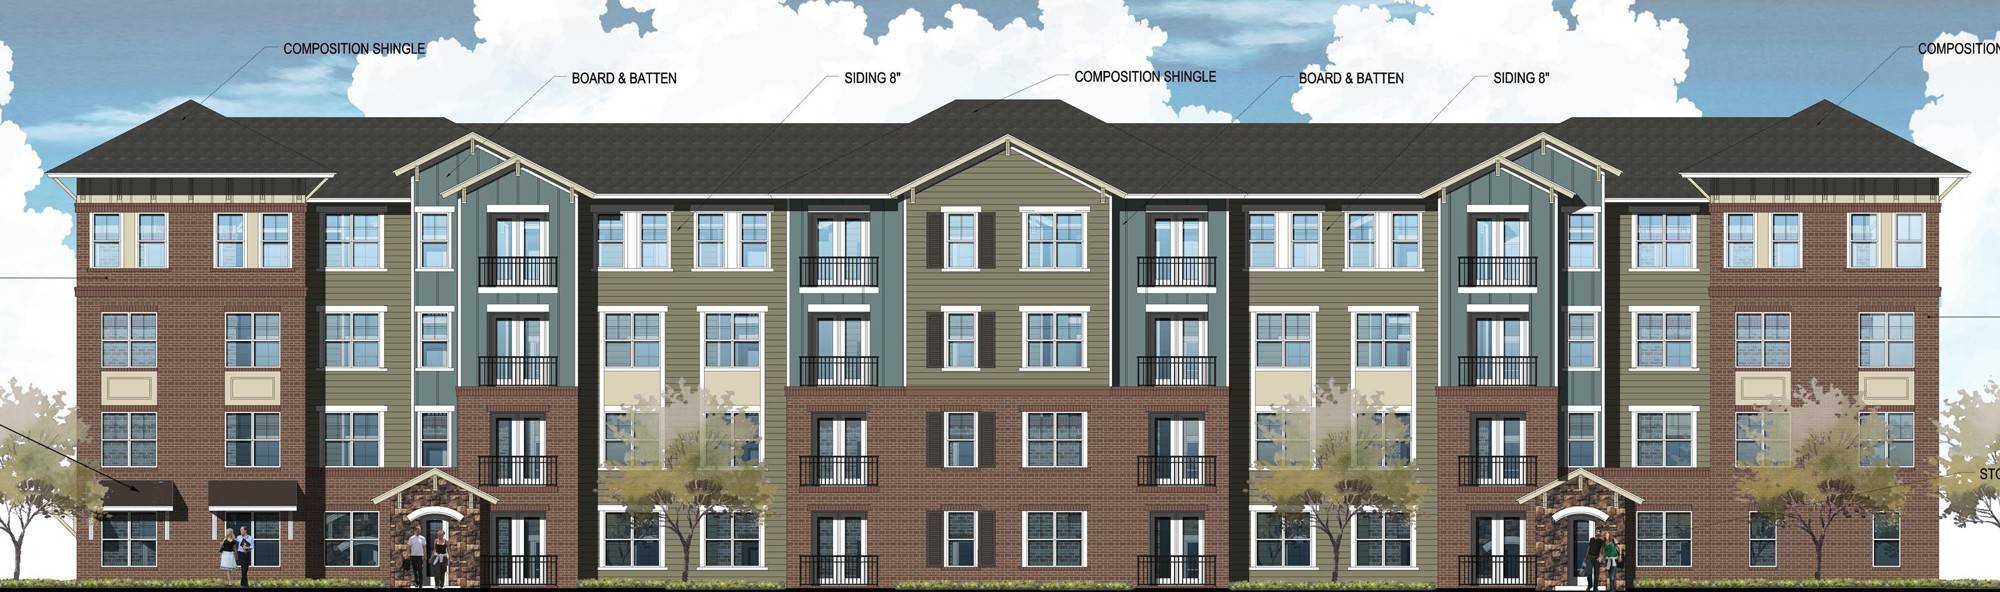 Schaumburg zoning board members are considering a new residential development along Algonquin Road containing six apartment buildings with a total of 192 units.